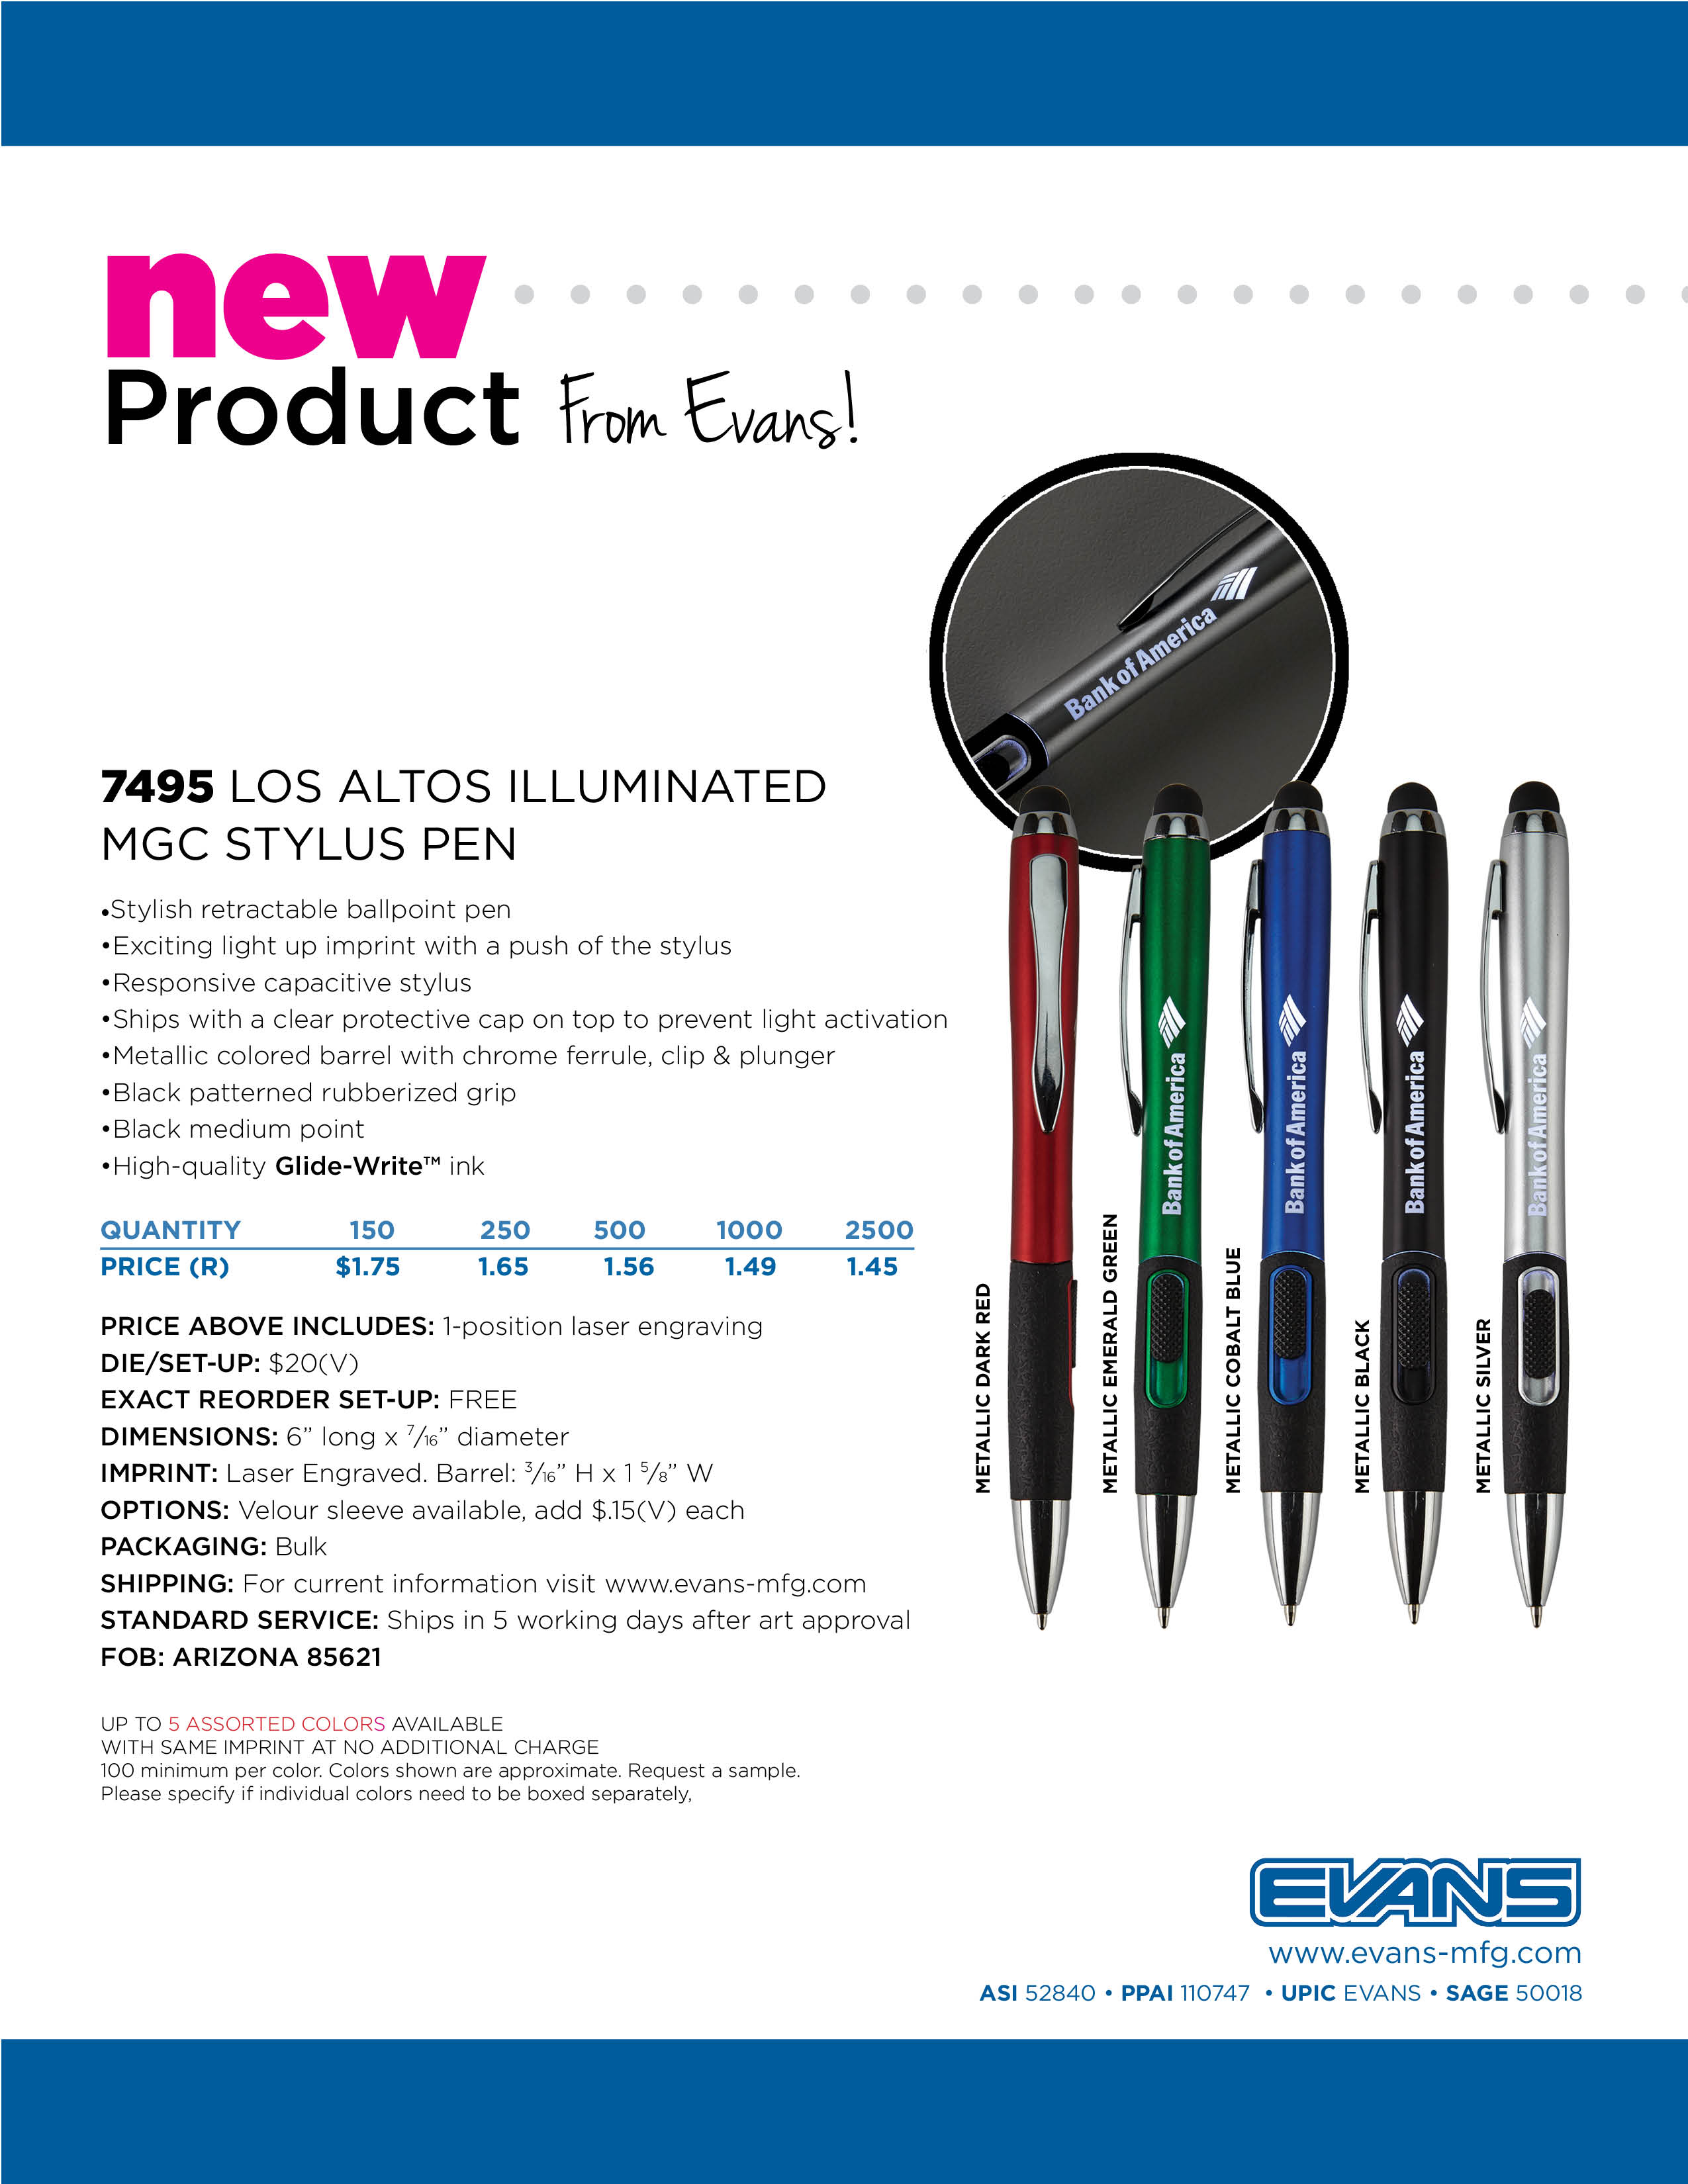 7495 Los Altos Illuminated MGC Stylus Pen